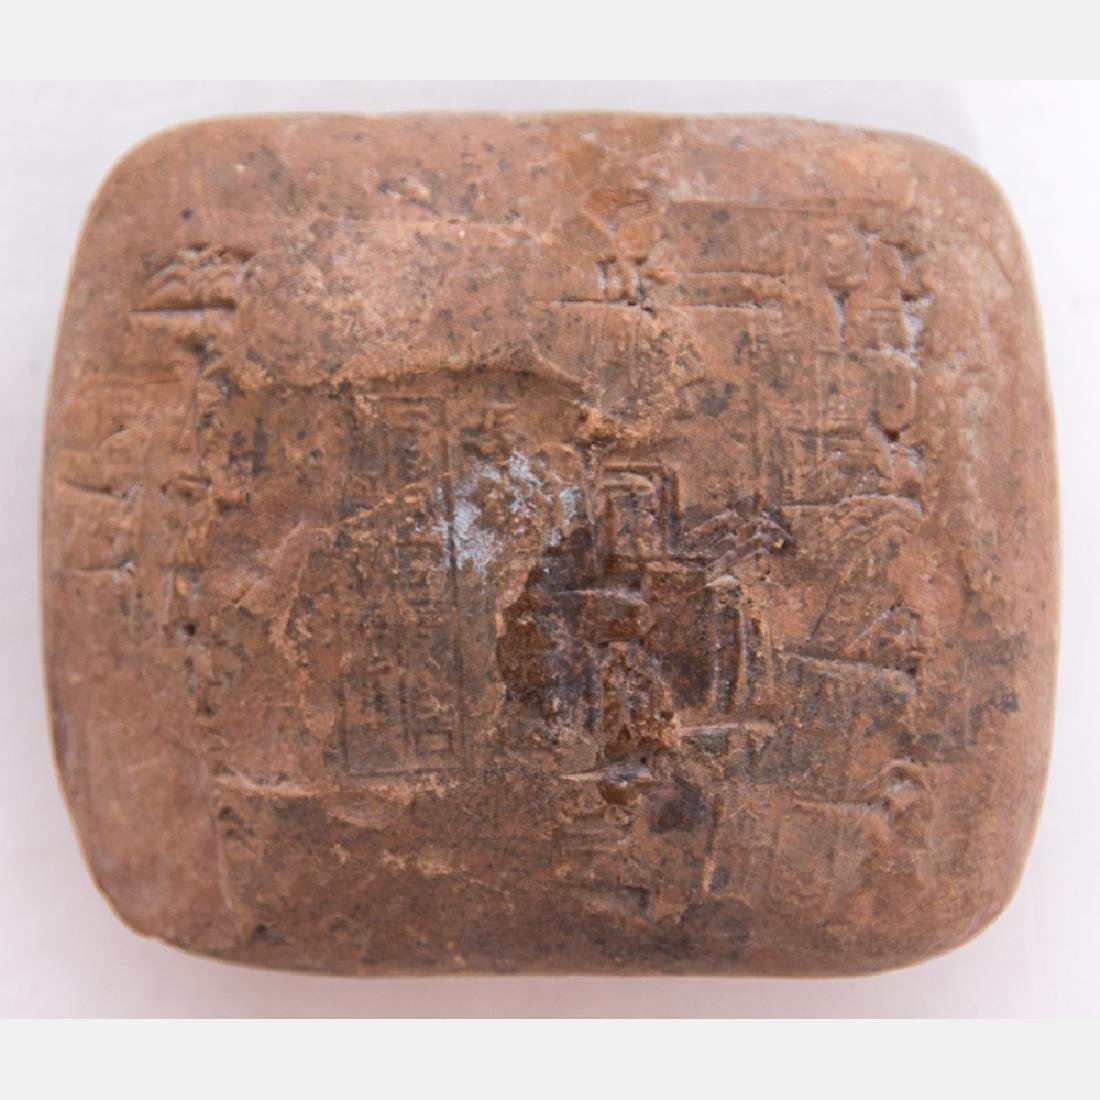 A Cuneiform Tablet from Ancient Sumer, dates from c. - 4